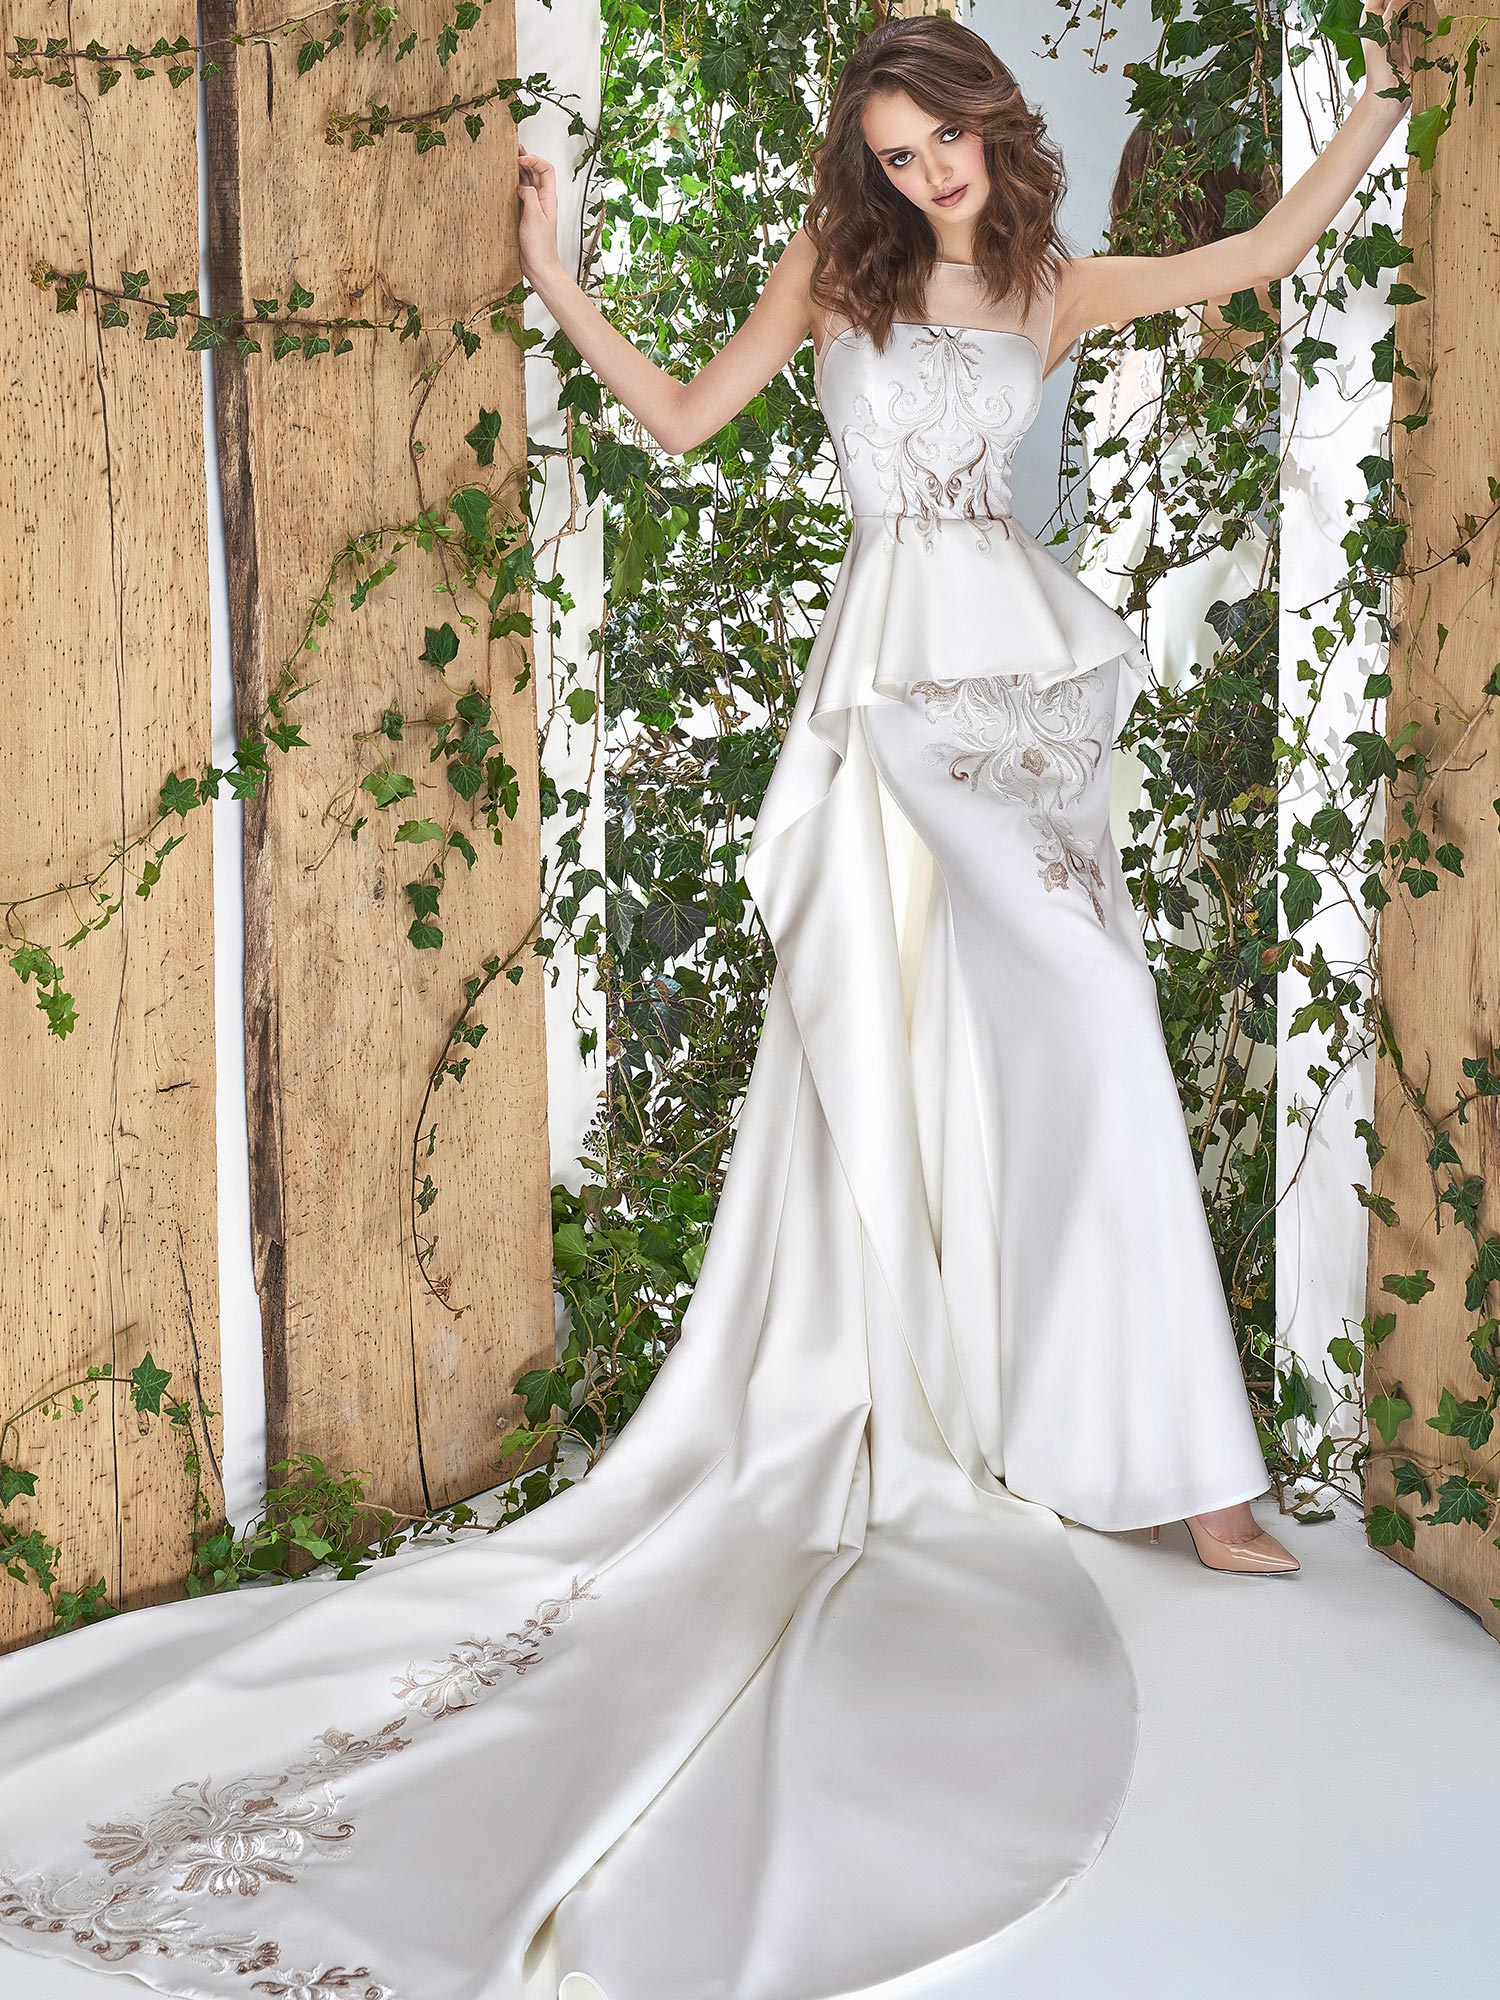 Papilio Illusion neckline wedding gown with peplum skirt and embroidery